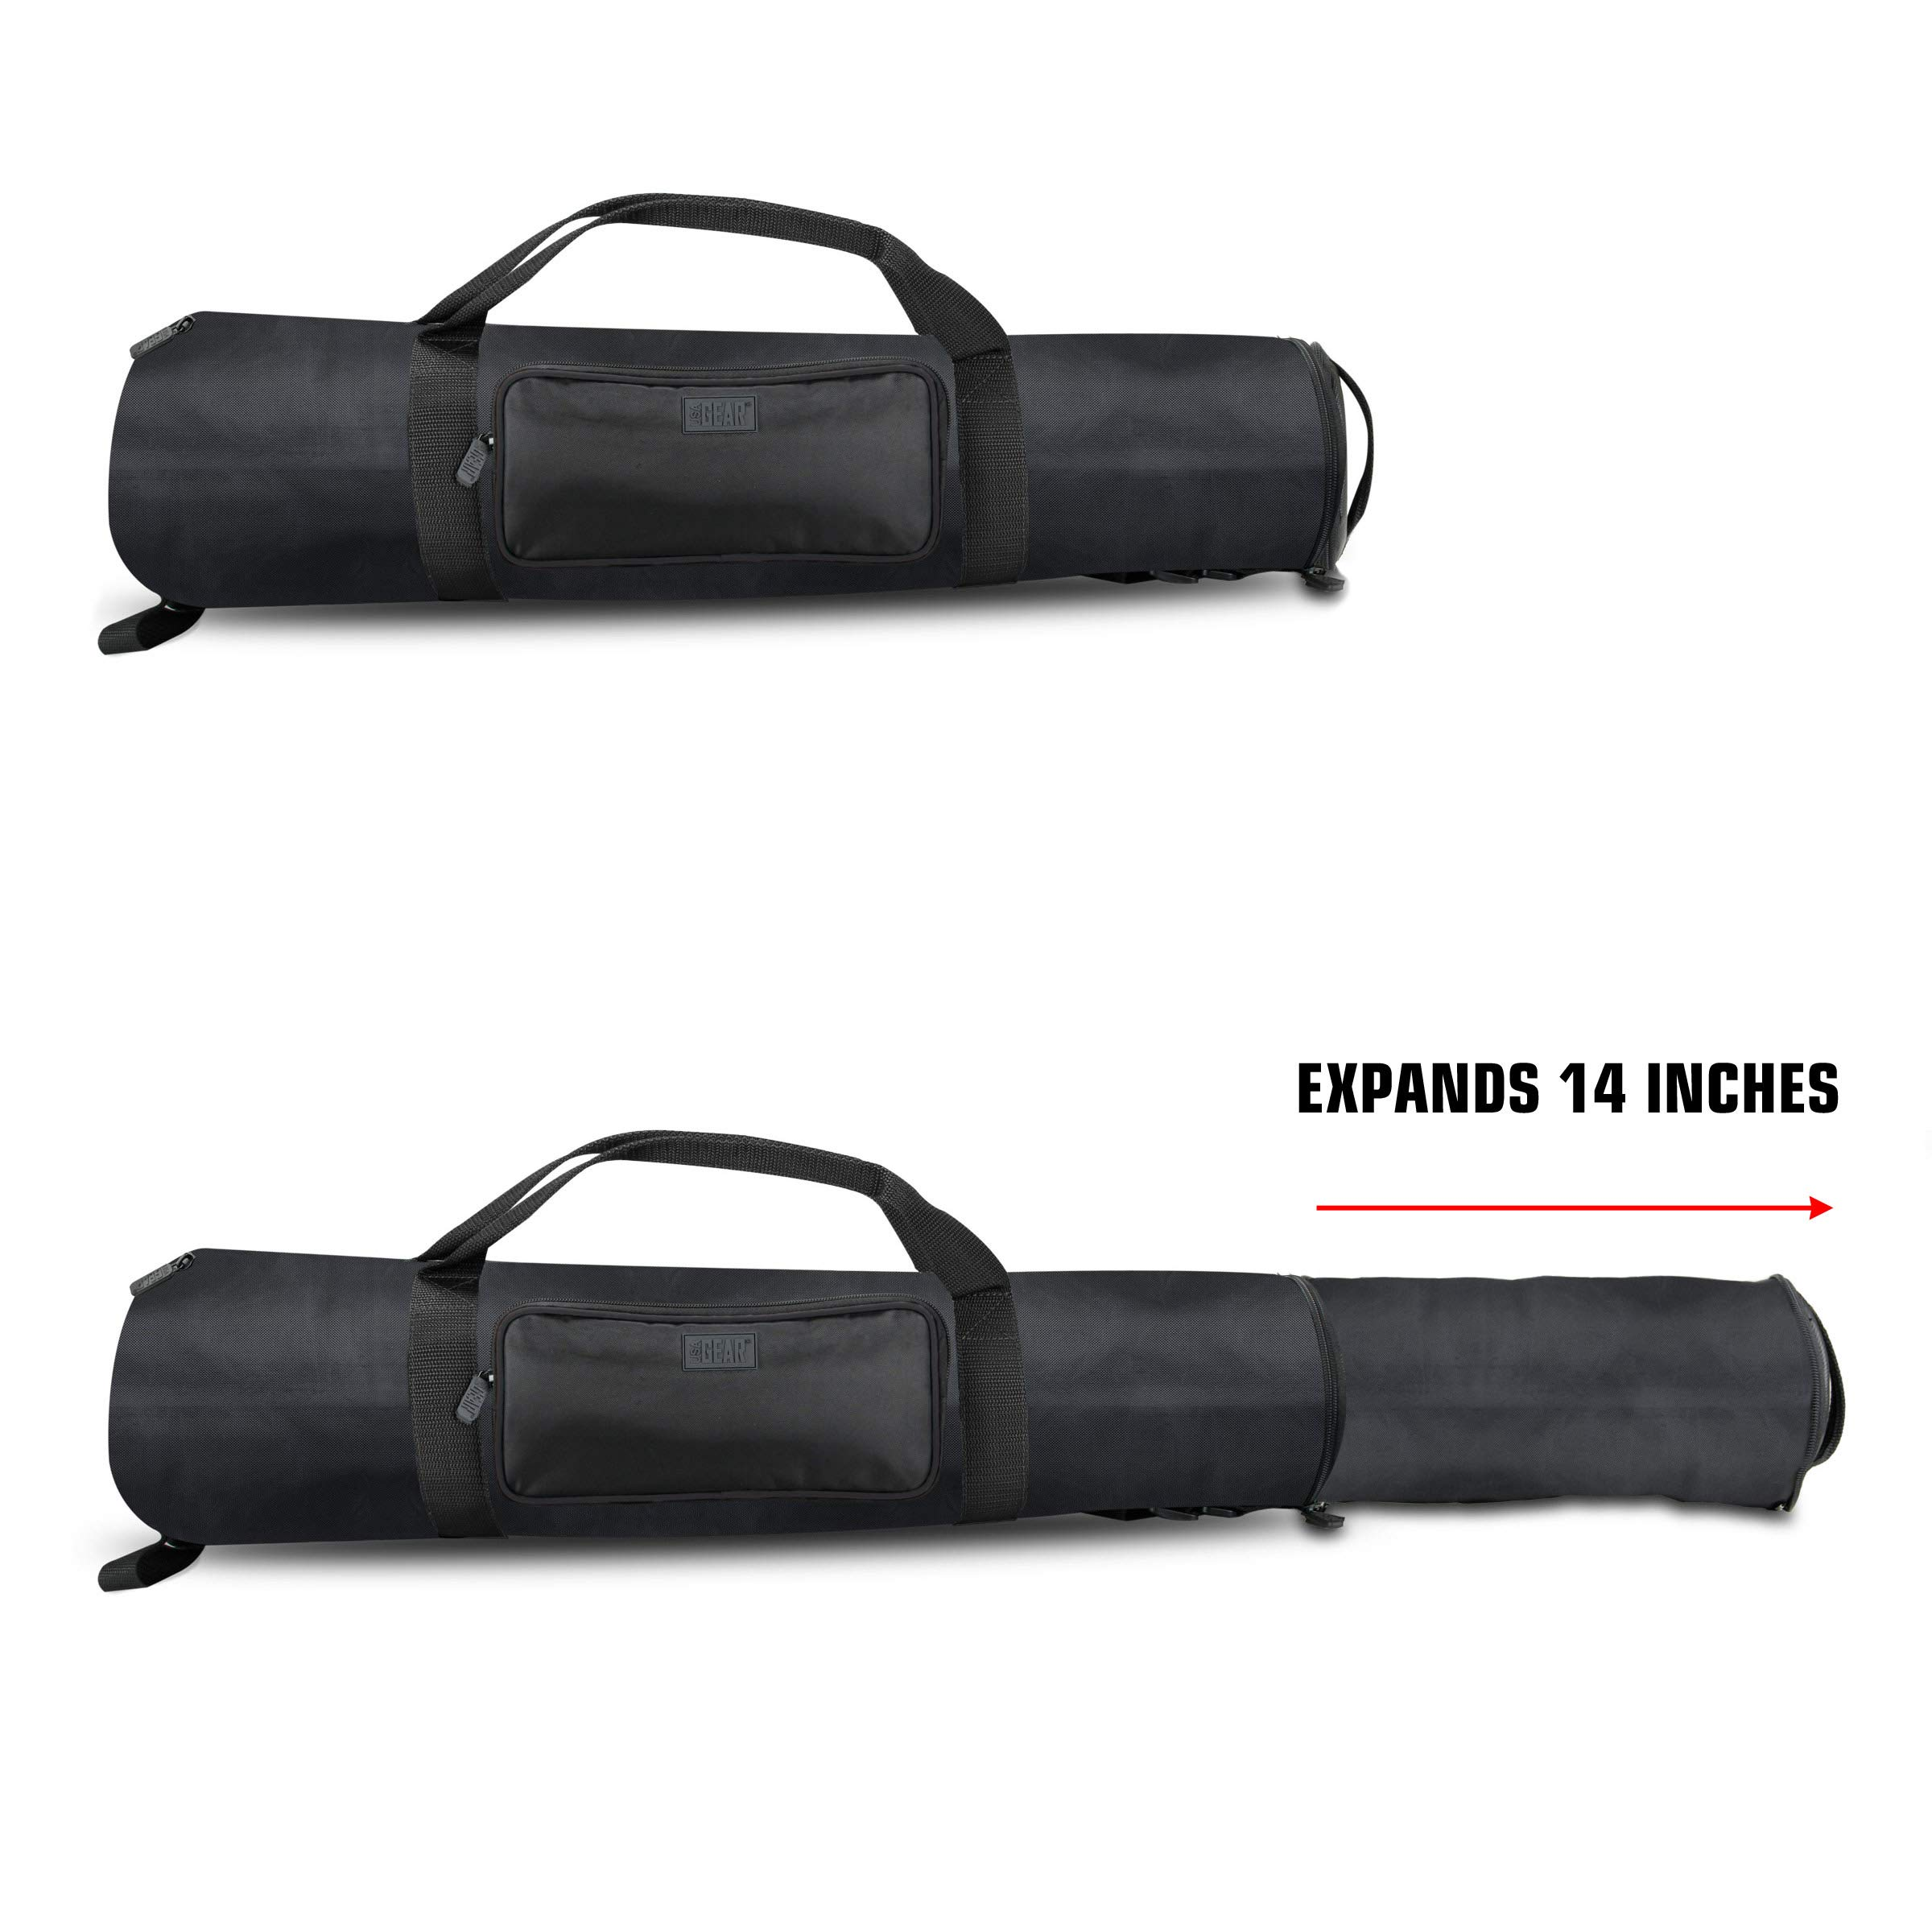 USA Gear Padded Tripod Case Bag - Holds Tripods from 21'' to 35'' Folded with Shoulder Strap, Adjustable Size Extension and Storage Pocket for Professional Camera Accessories and Photo Carrying Needs by USA Gear (Image #2)